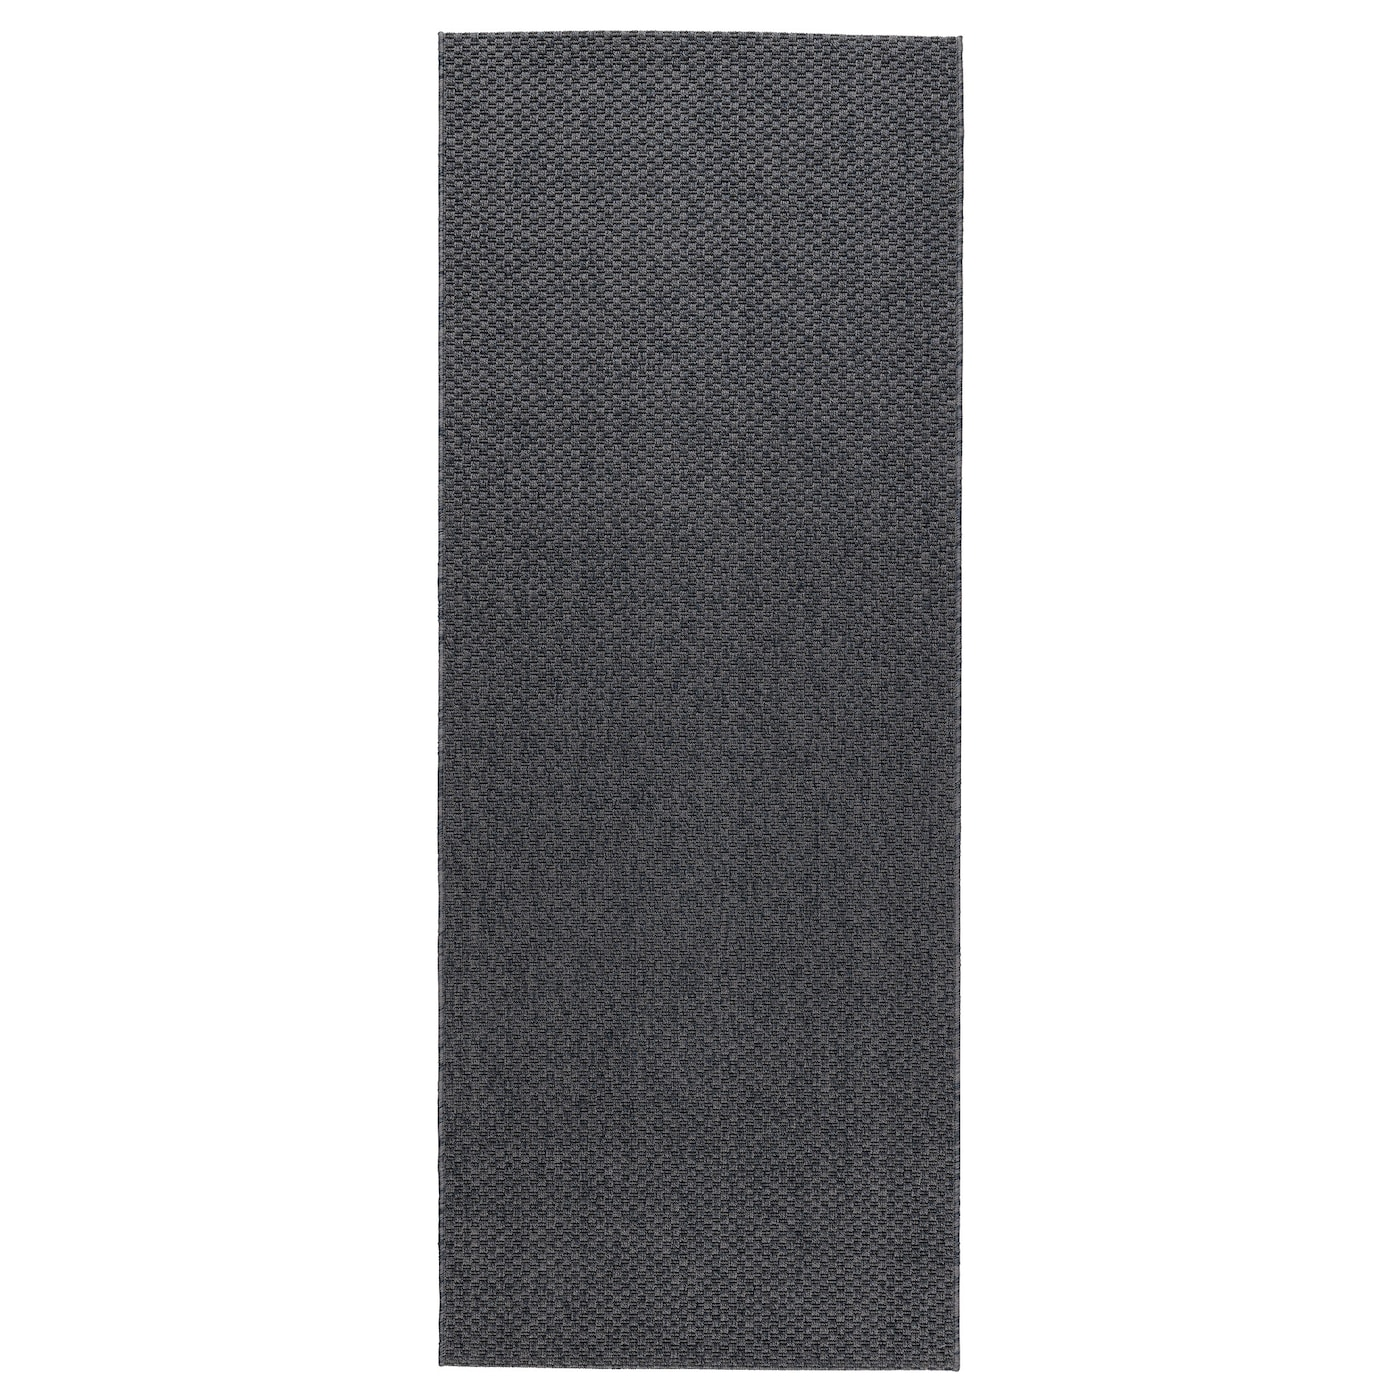 tapis d 39 ext rieur textiles d 39 ext rieur ikea. Black Bedroom Furniture Sets. Home Design Ideas